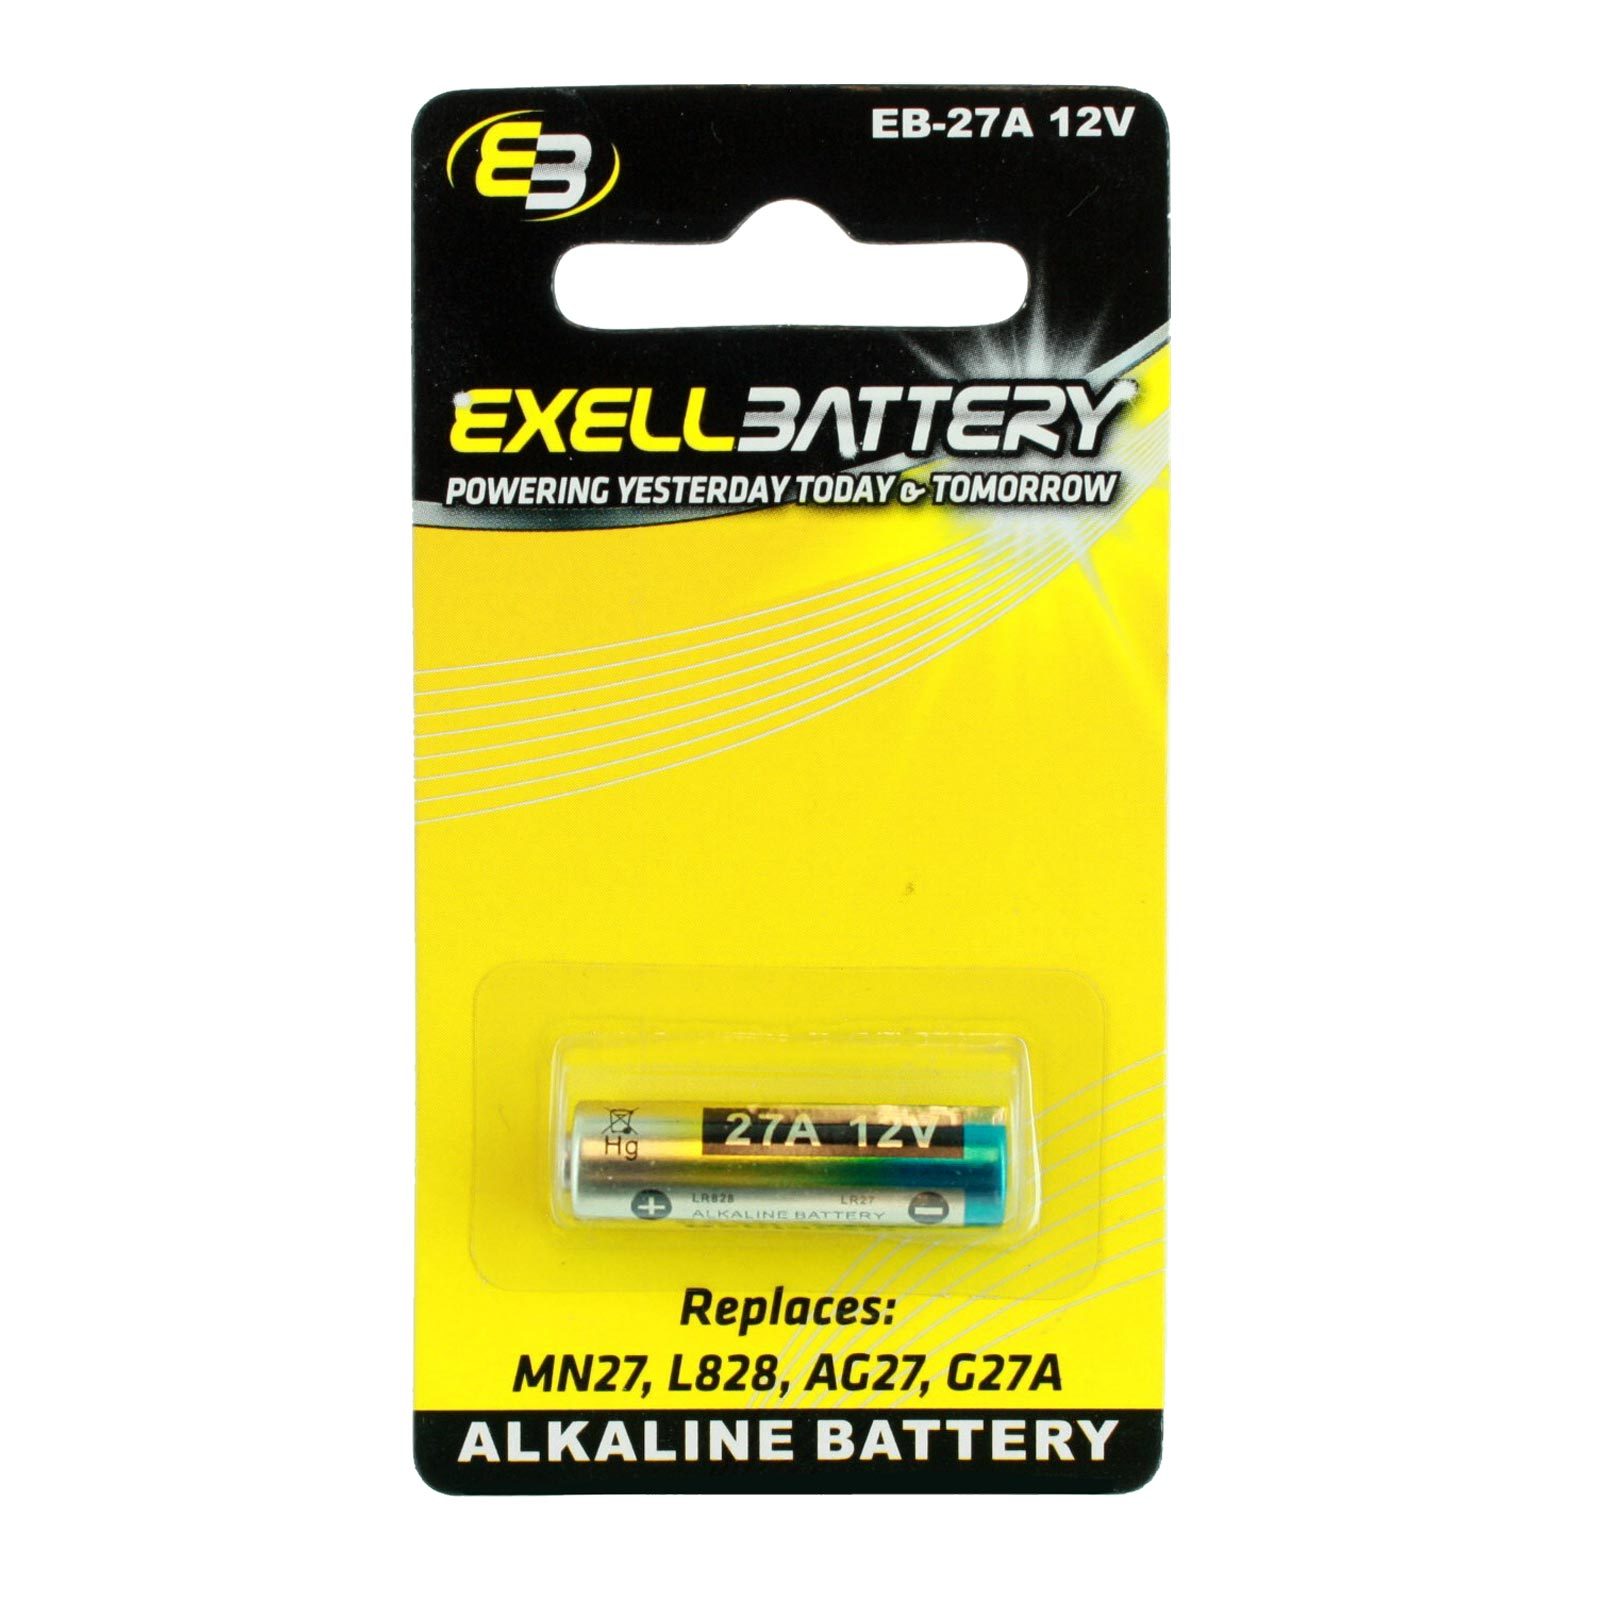 Exell EB-27A Alkaline 12V Battery Replaces MN27 L828 AG27 G27 FAST USA SHIP